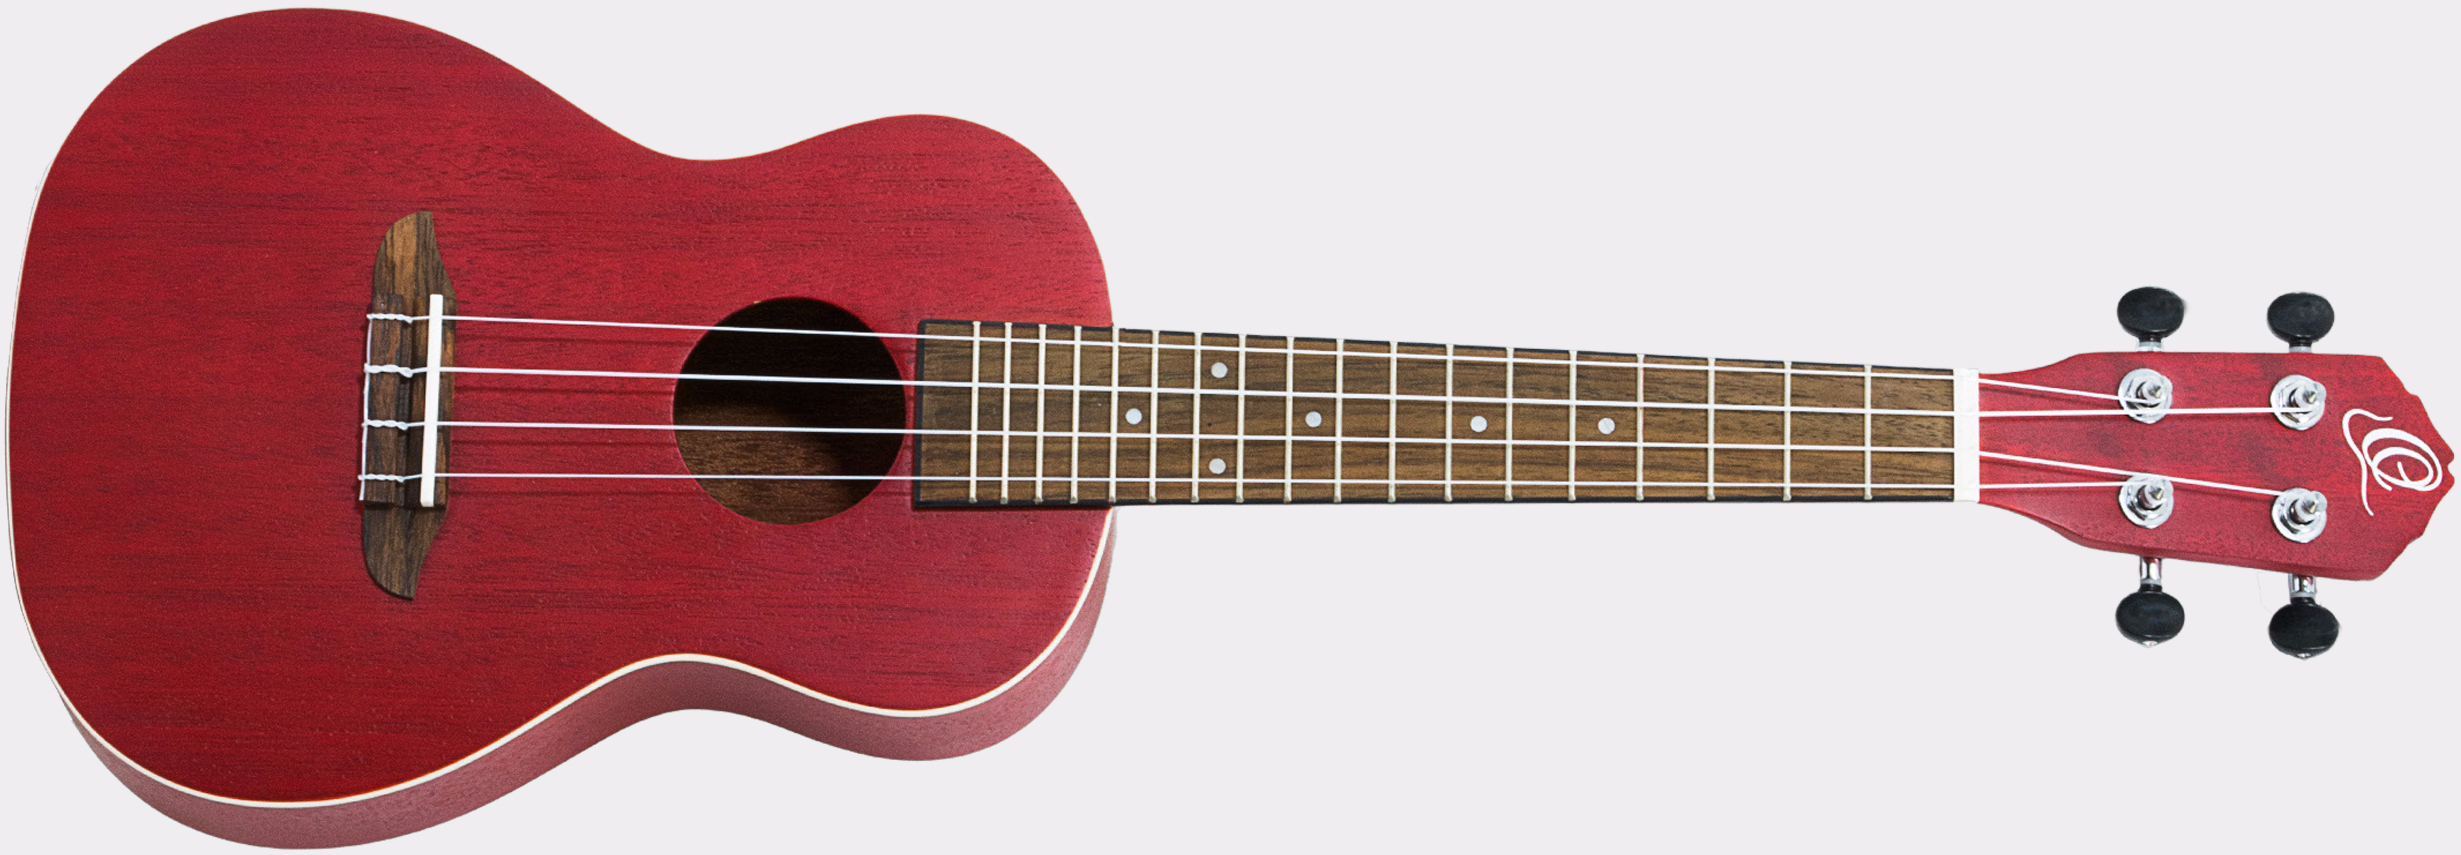 Ortega Earth Ukulele See Thru Red Front